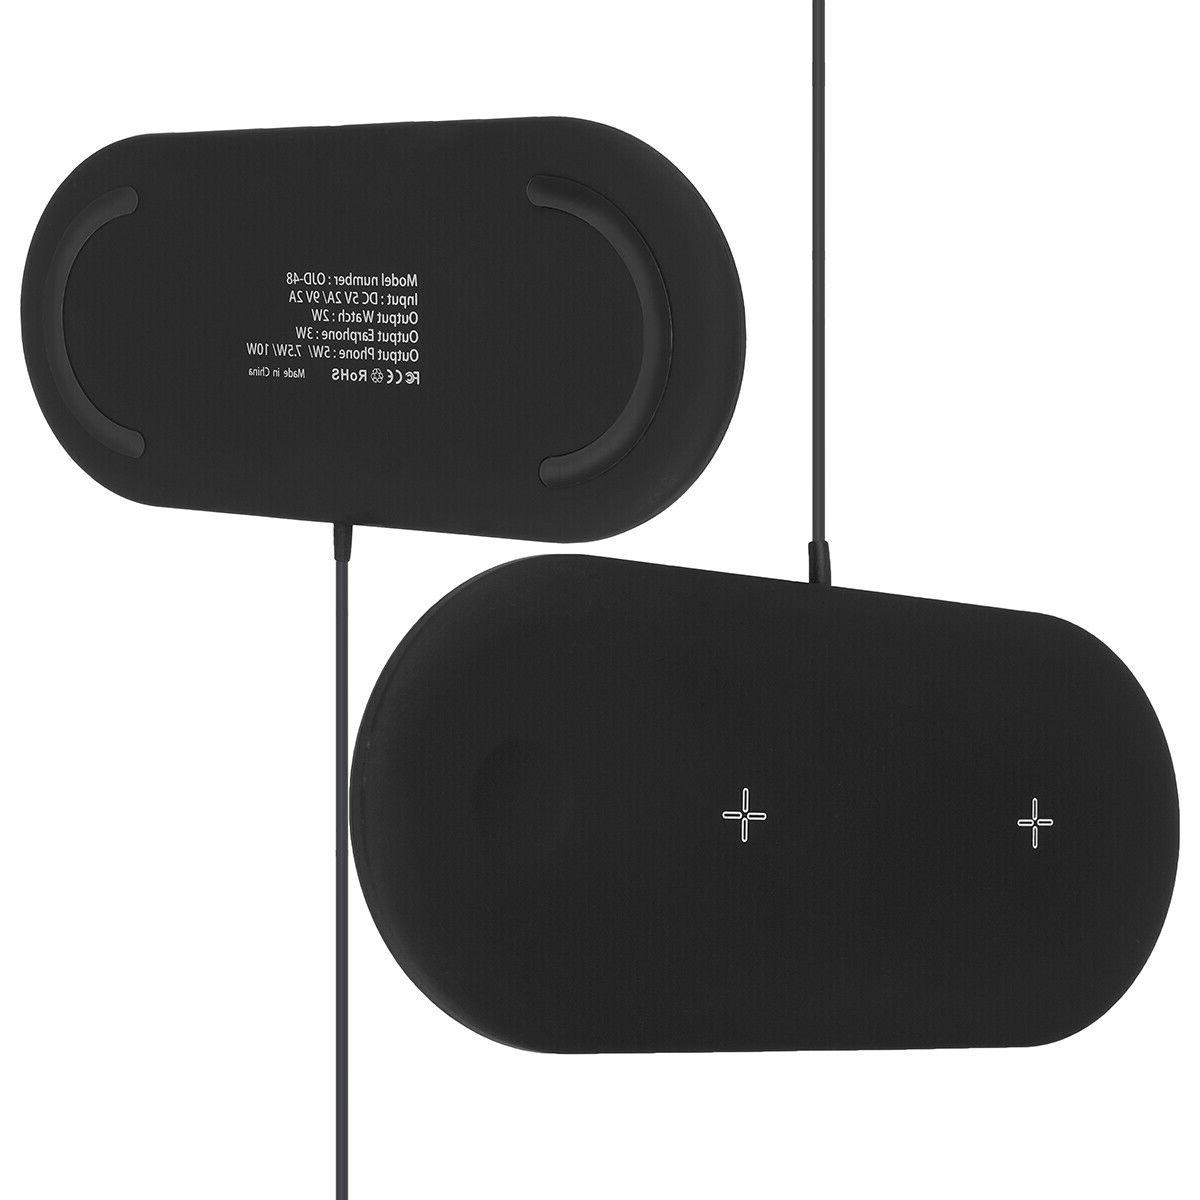 3in1 Wireless Charging Apple / iPhone/AirPods